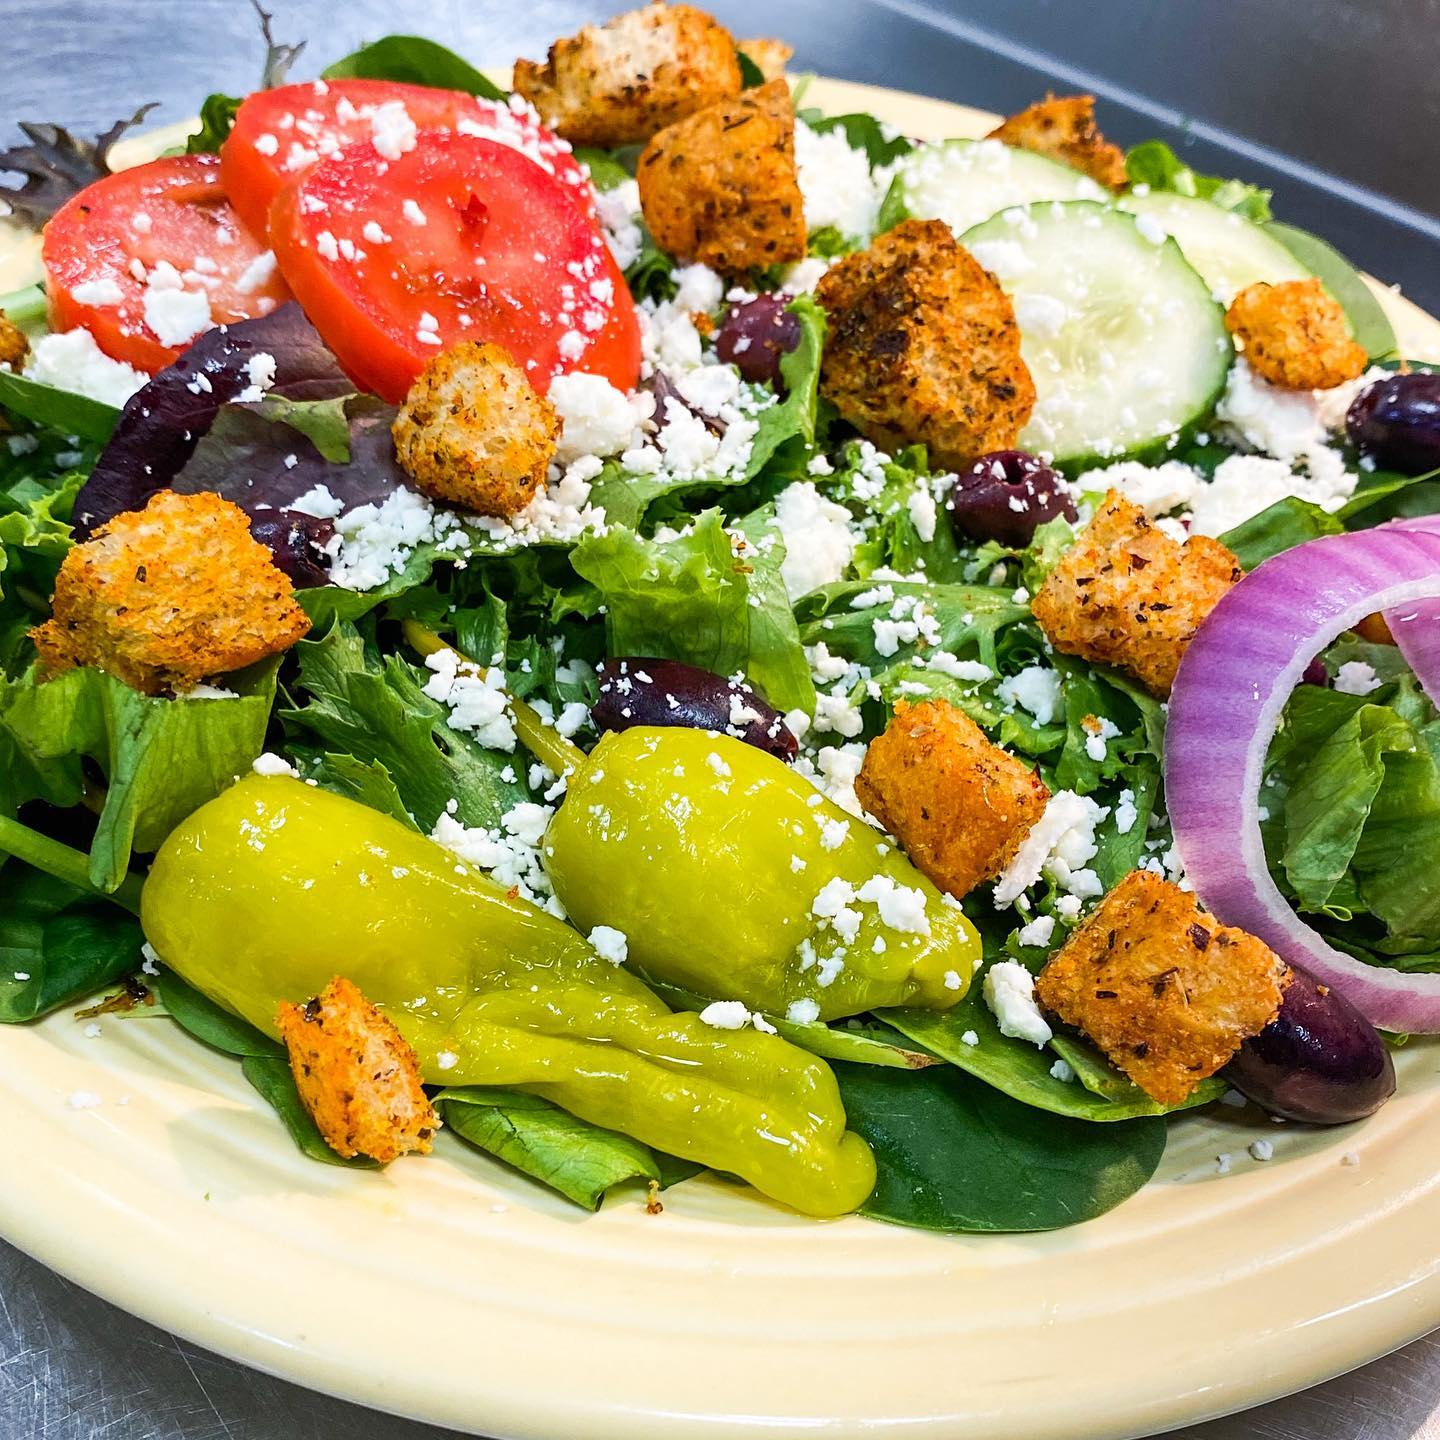 salad with peppers, onions, lettuce, croutons, and tomatoes